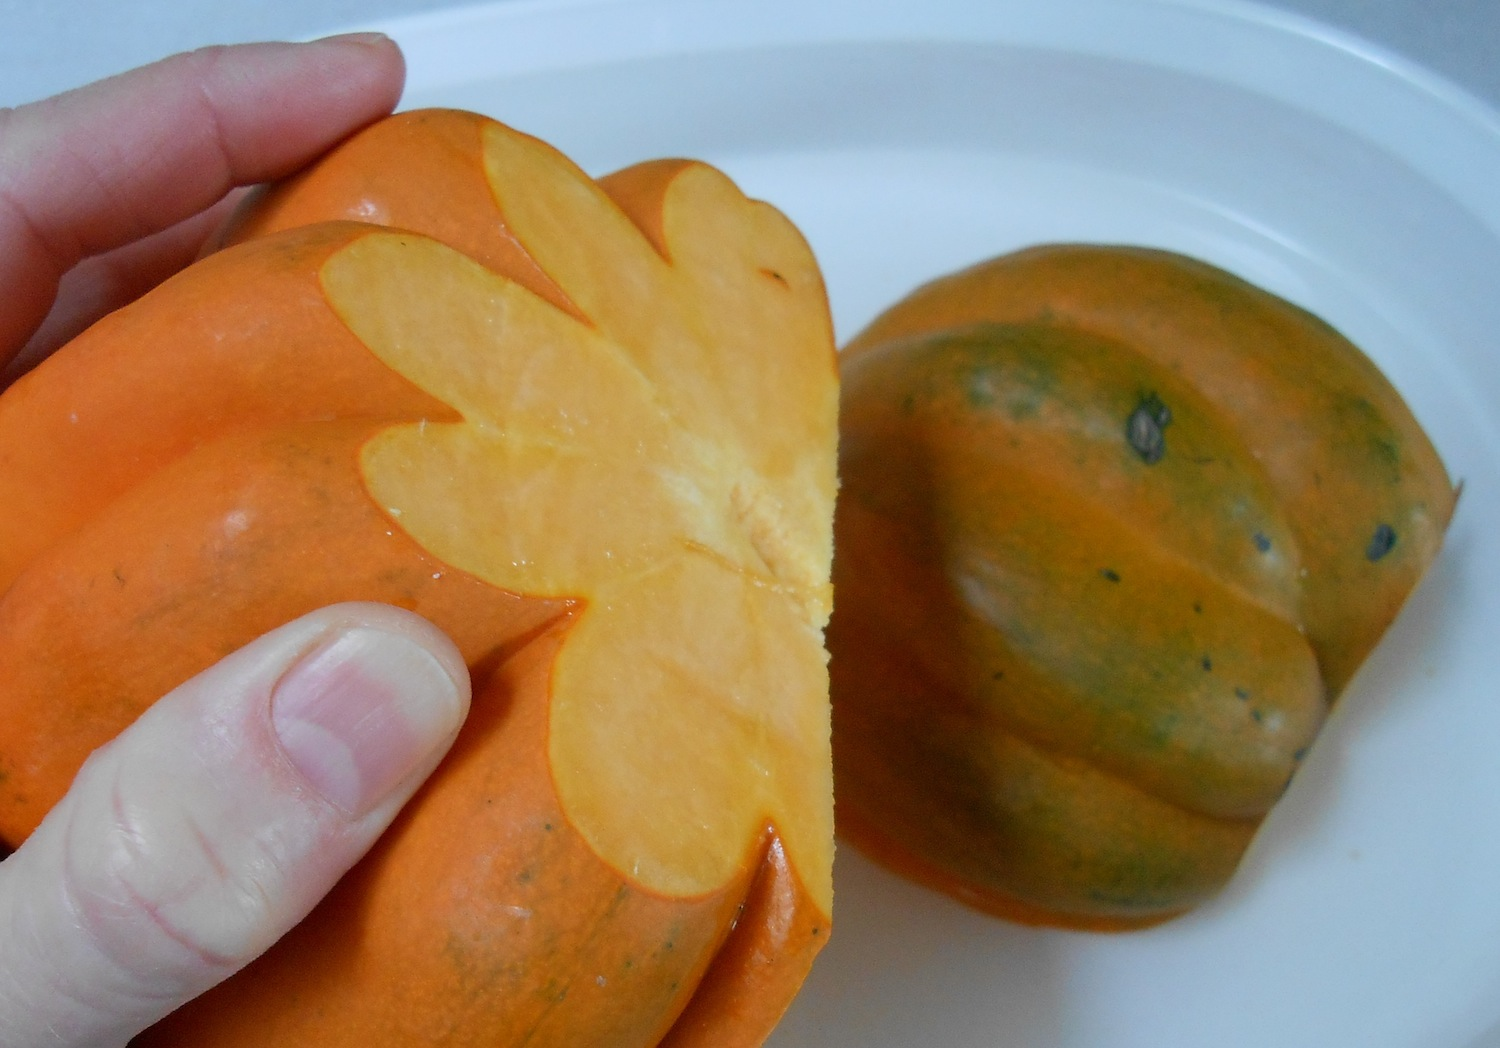 acorn squash with stem removed